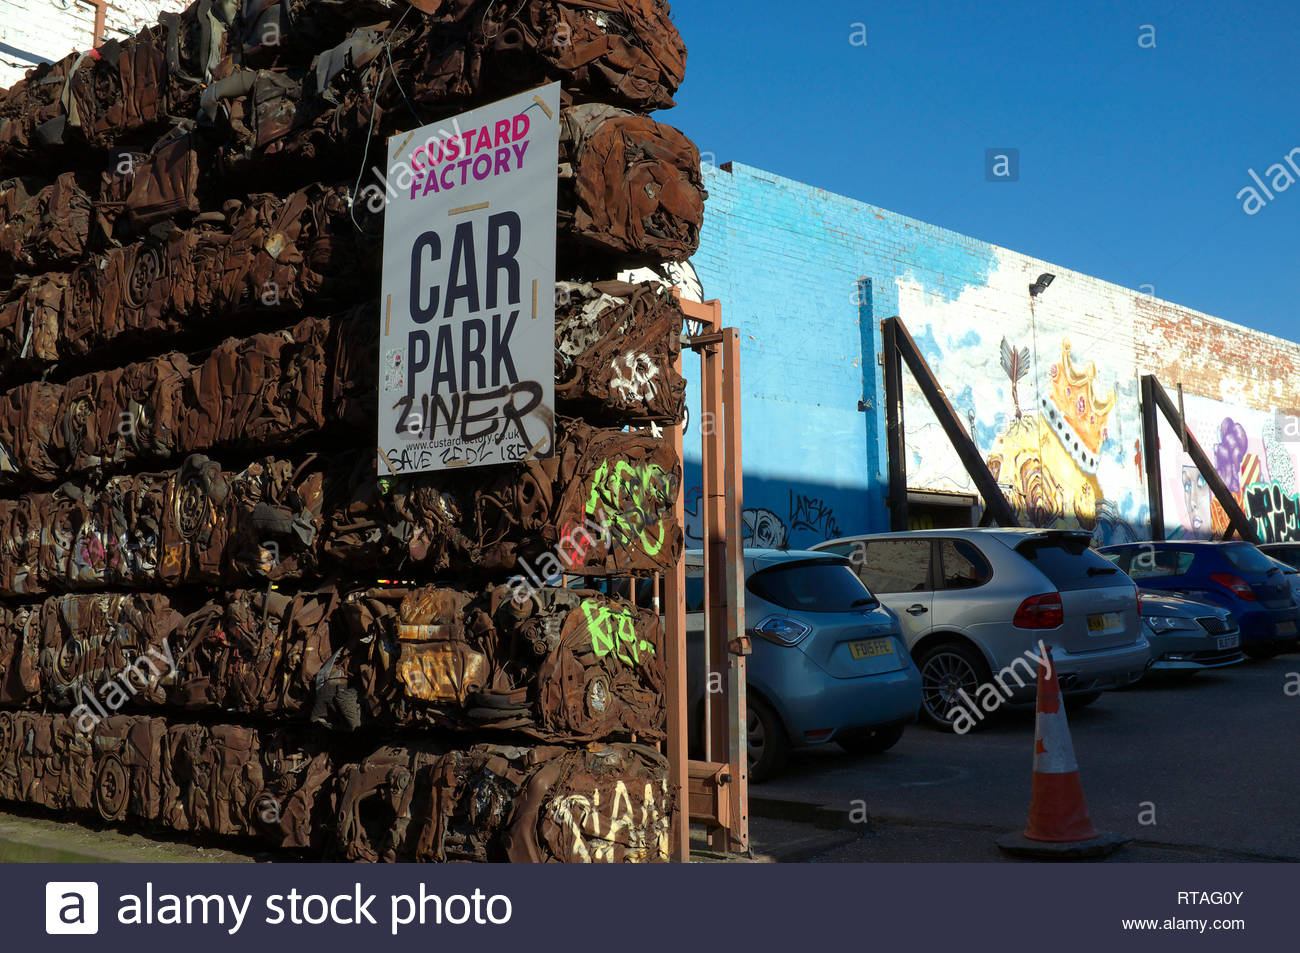 Car parking for the Custard Factory - creative use of baled crushed cars and wall murals in the Digbeth area of central Birmingham, West Midlands, UK. Stock Photo